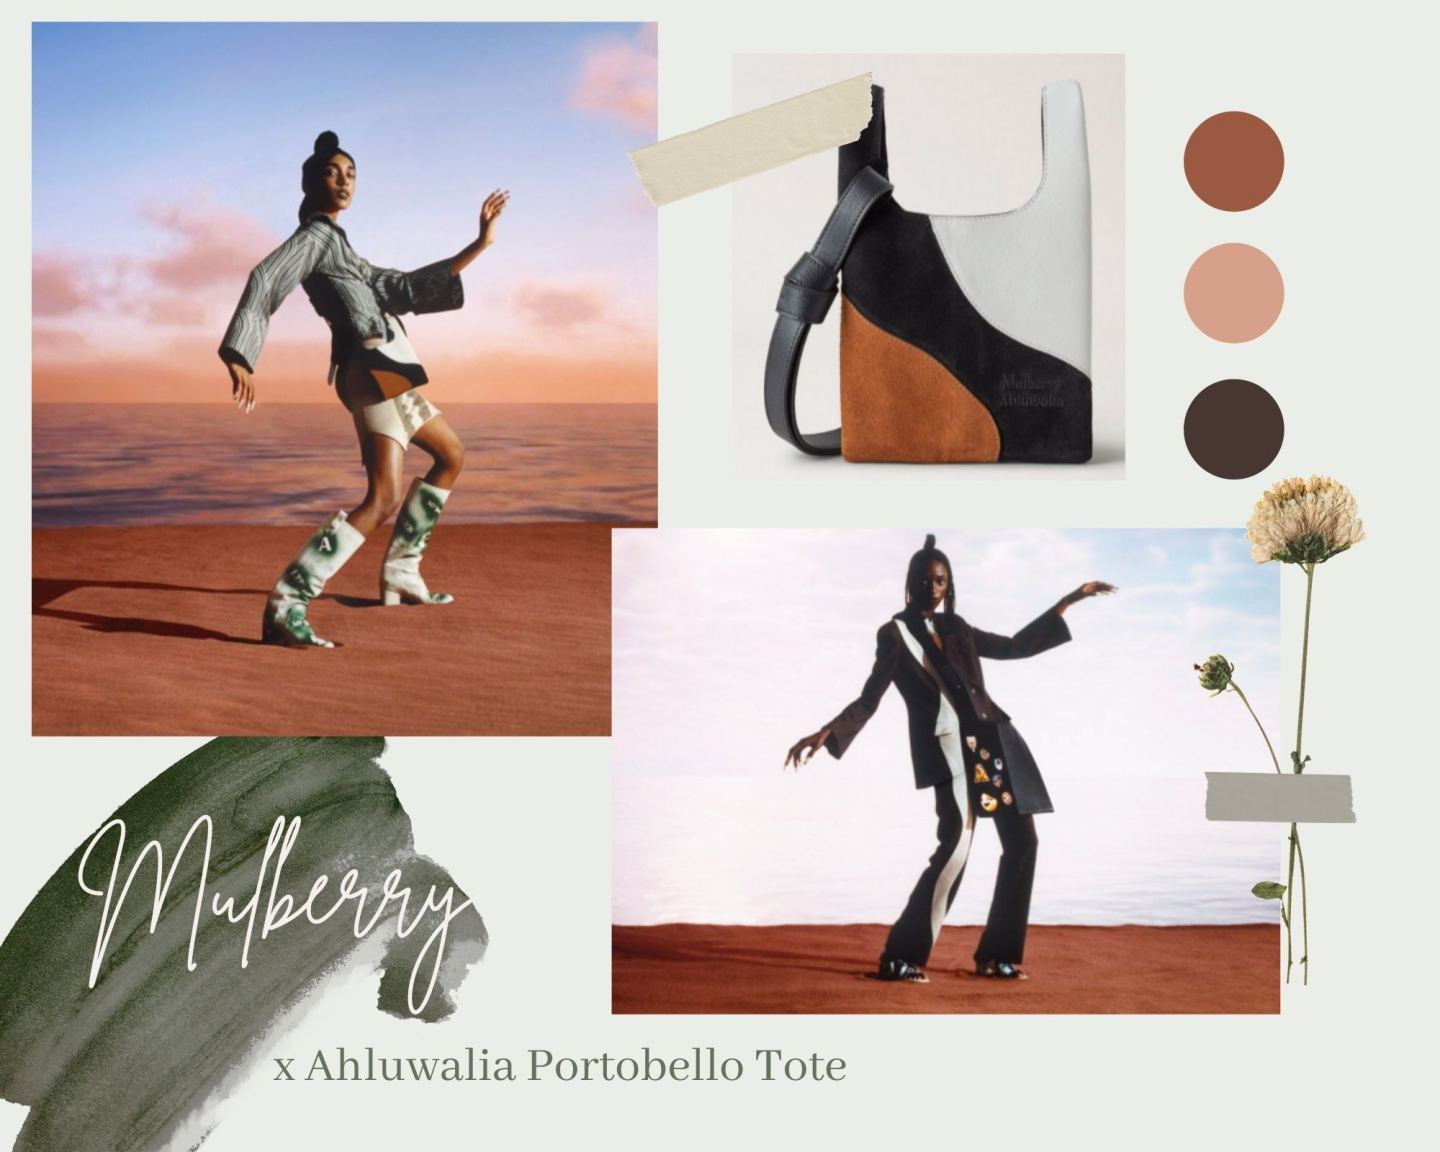 Have You Seen The Mulberry x Ahluwalia Portobello Tote Bag Collection?